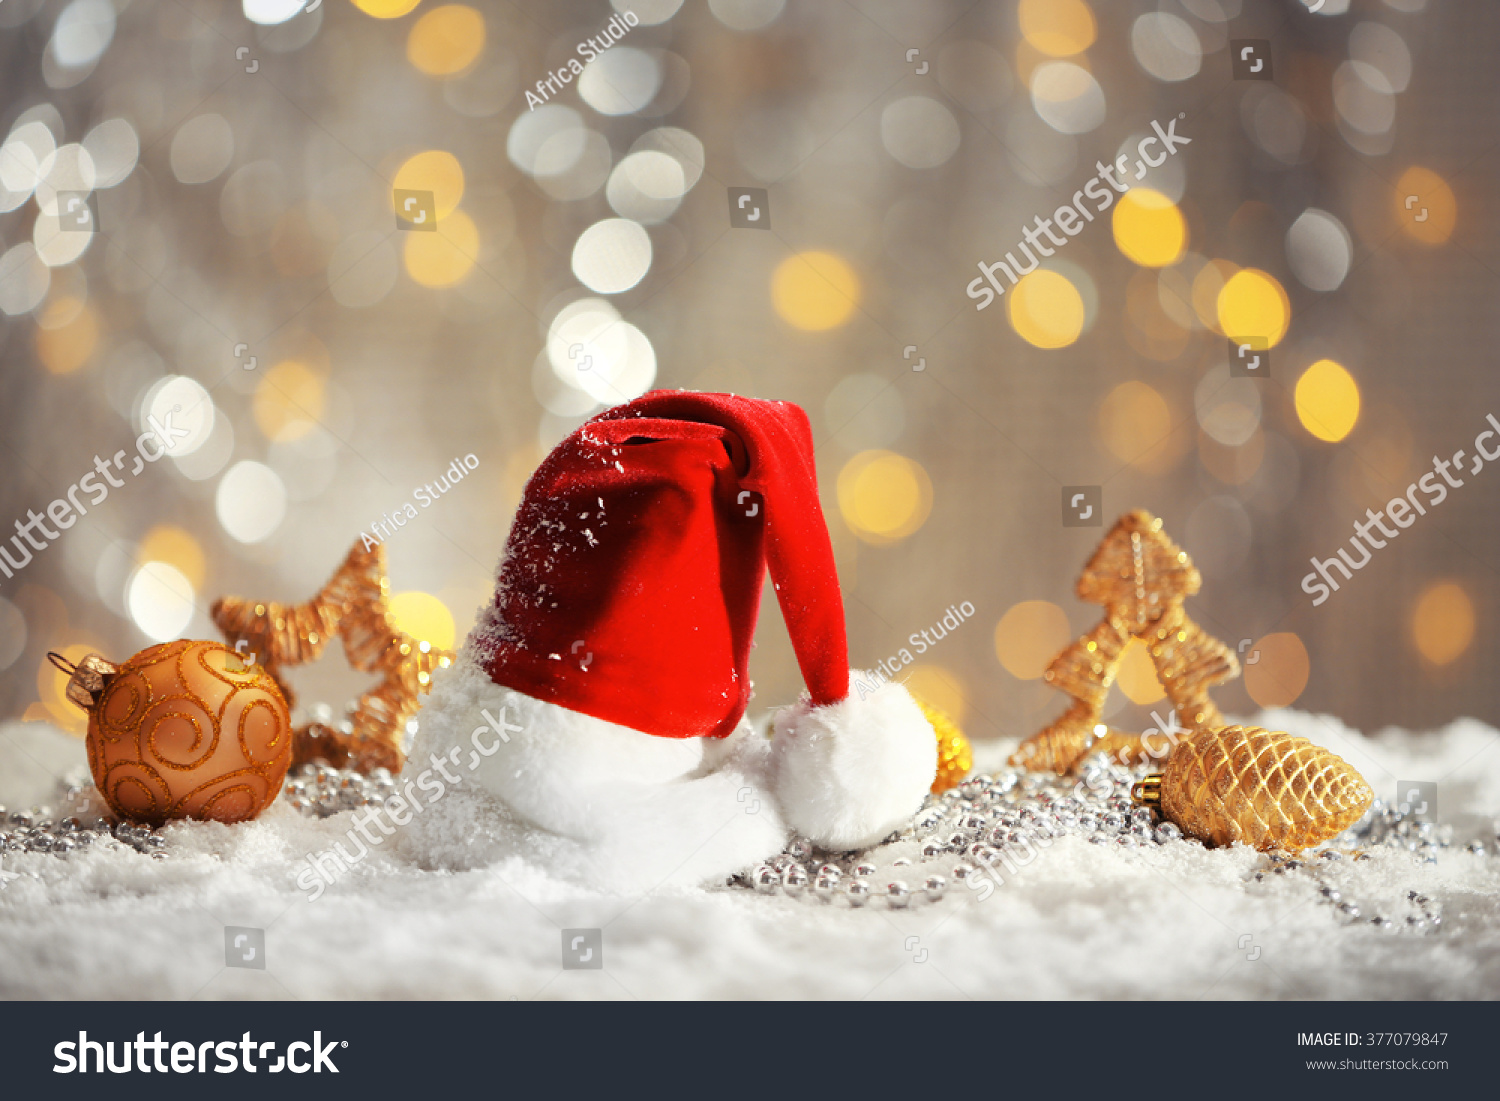 Santa claus red hat christmas decorations stock photo for Artificial snow decoration